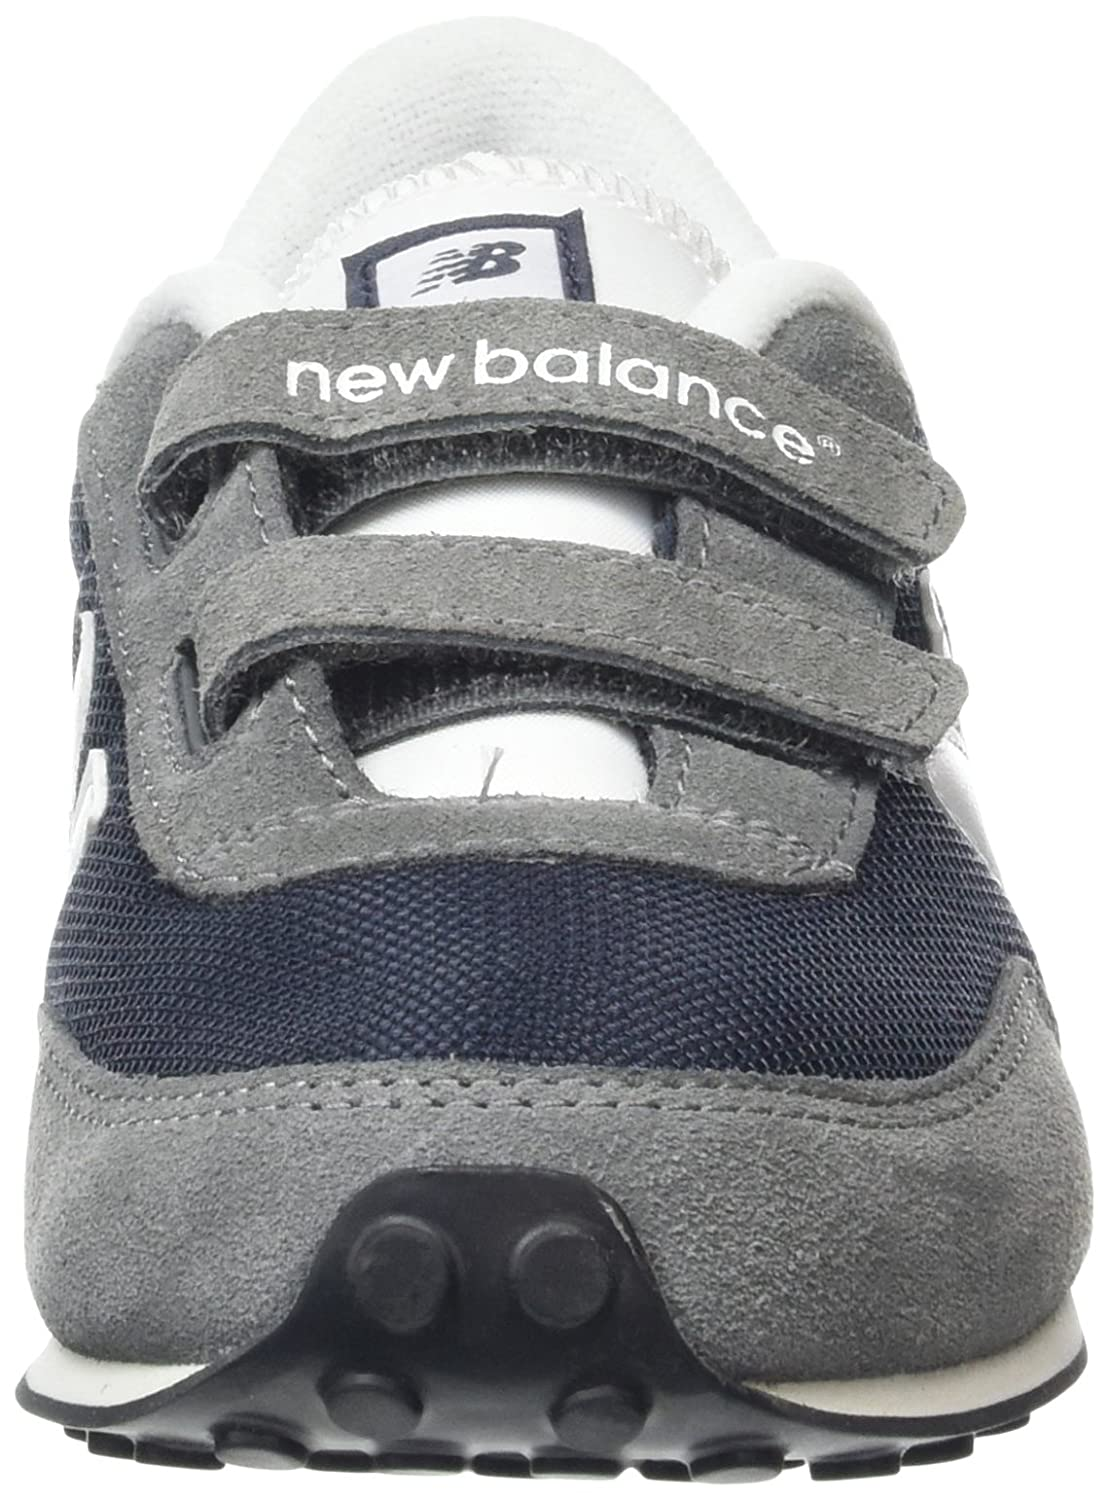 reputable site bae5a 63336 New Balance Unisex Kids Hi-Top Sneakers, Multicolor (Navy 410), 5 UK 38 EU   Amazon.co.uk  Shoes   Bags